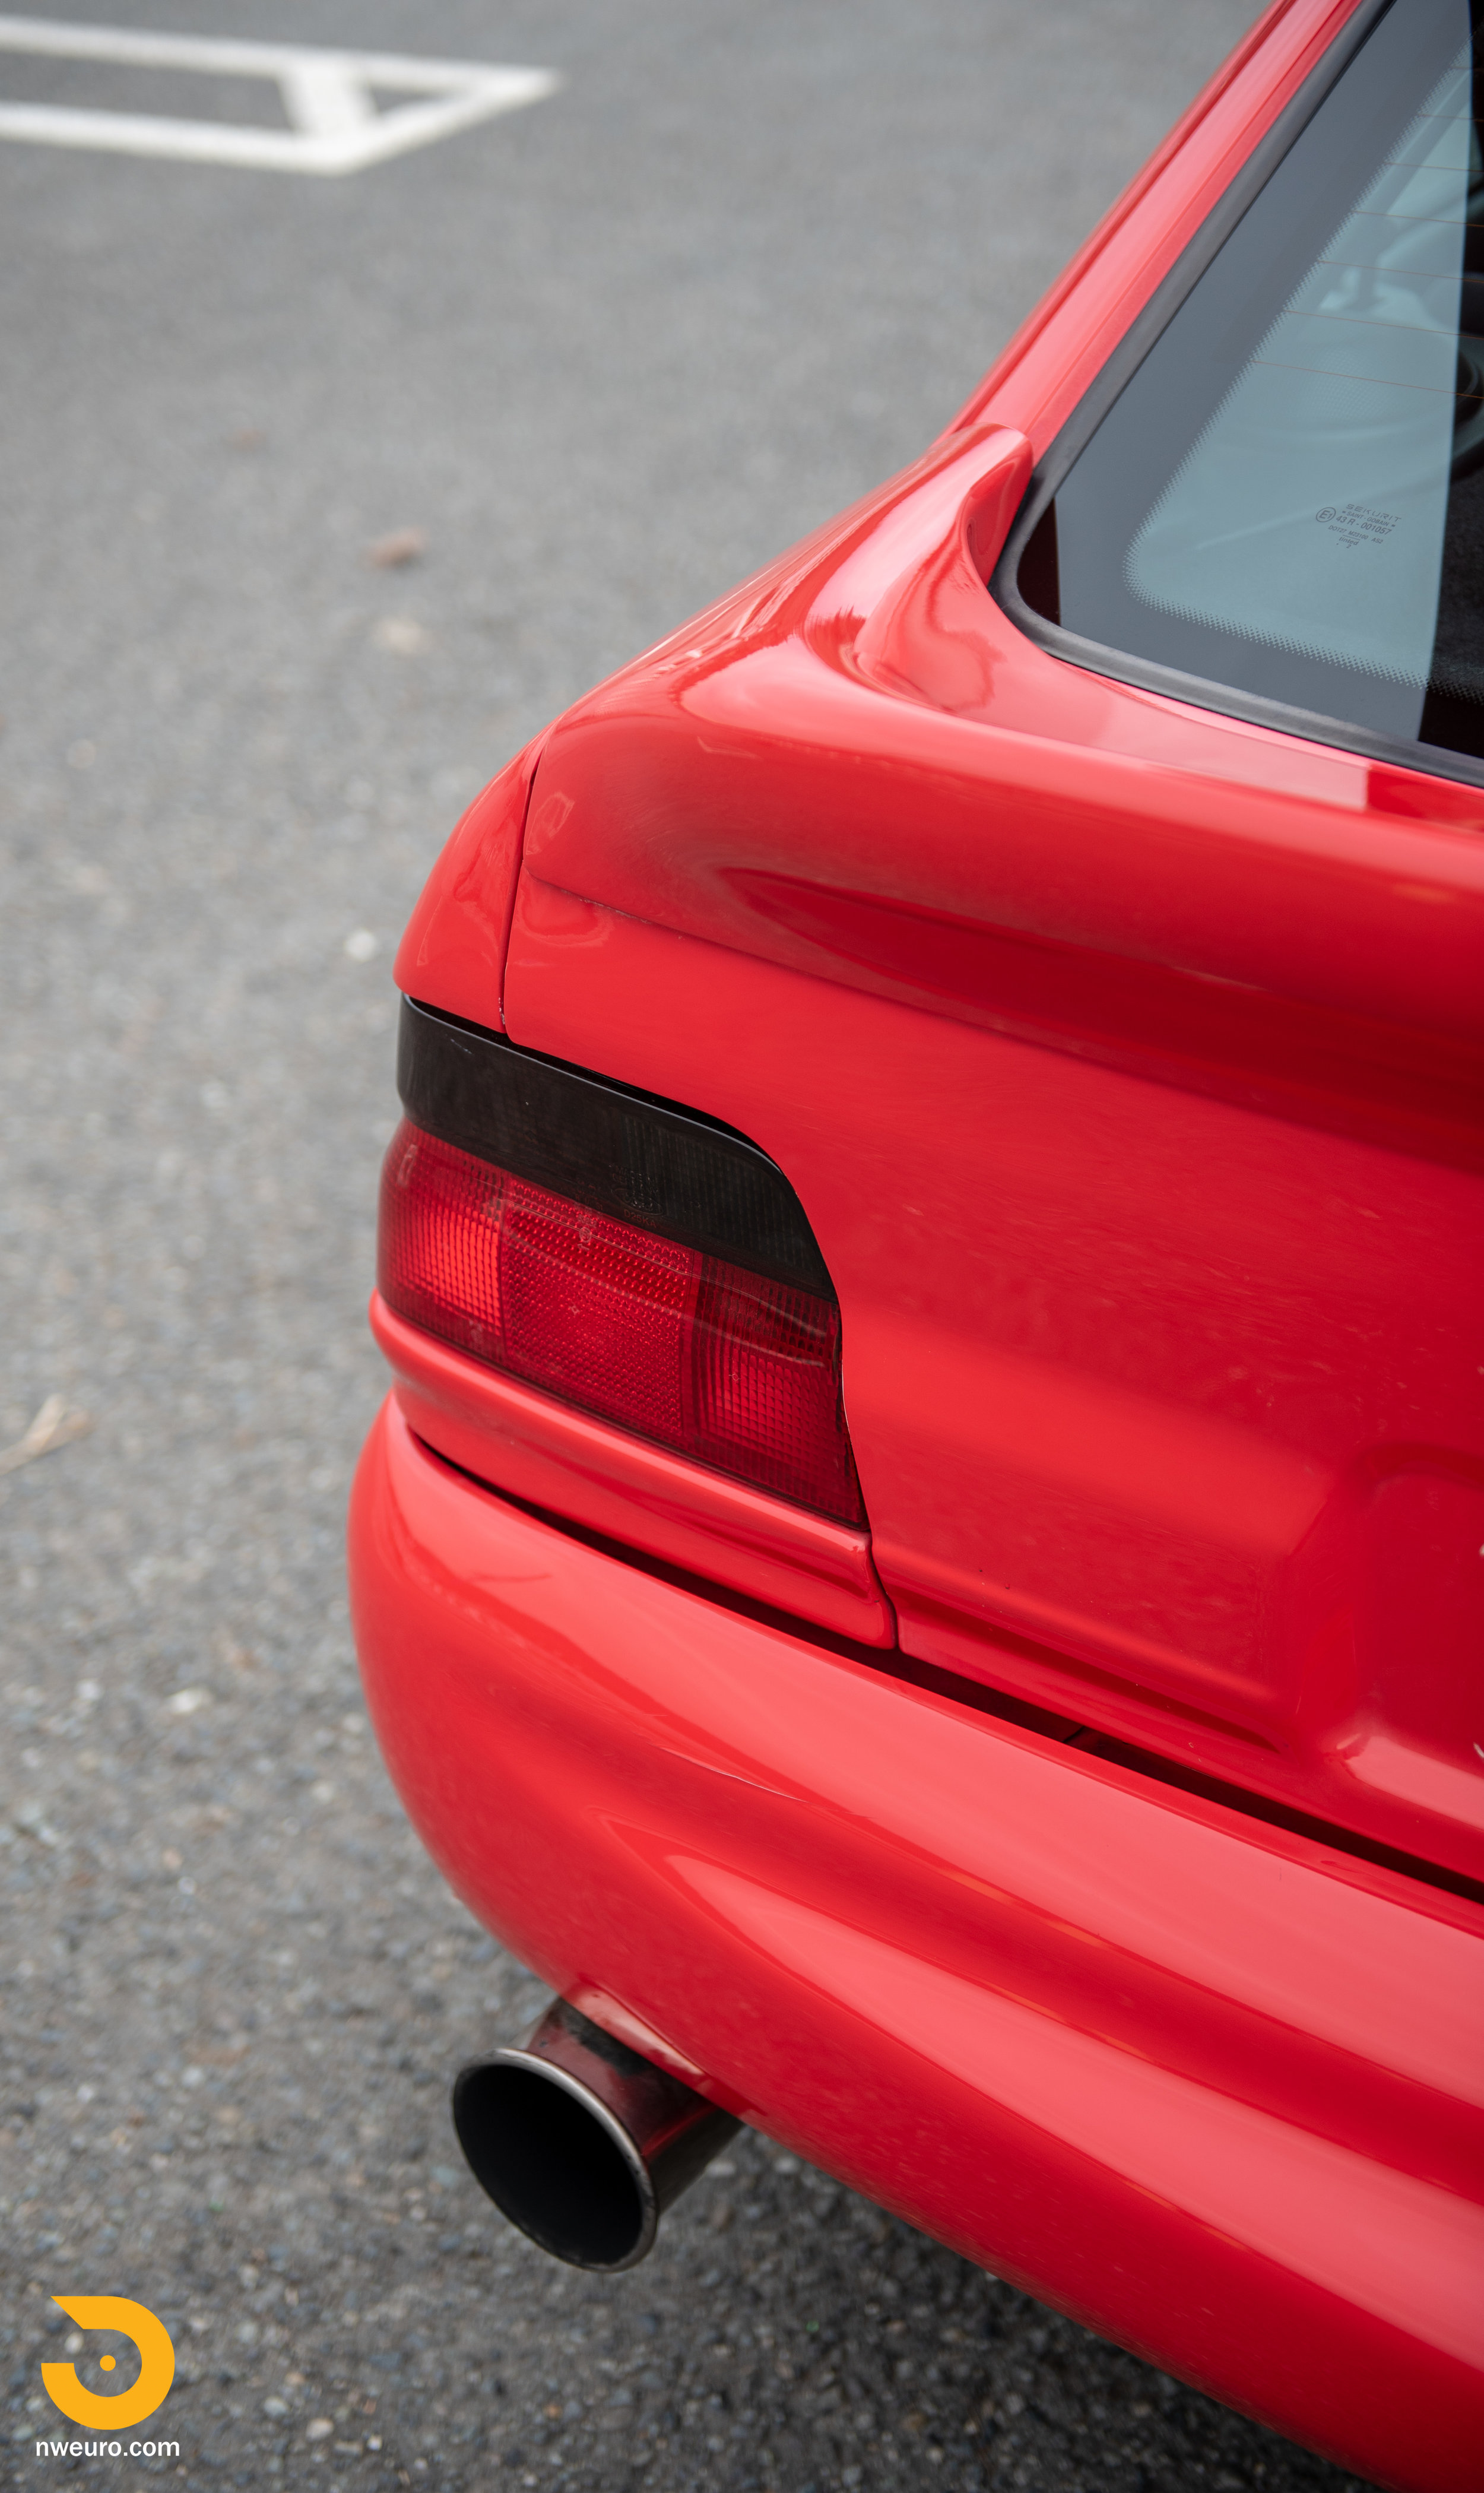 1993 Ford Escort Cosworth RS Red-4.jpg